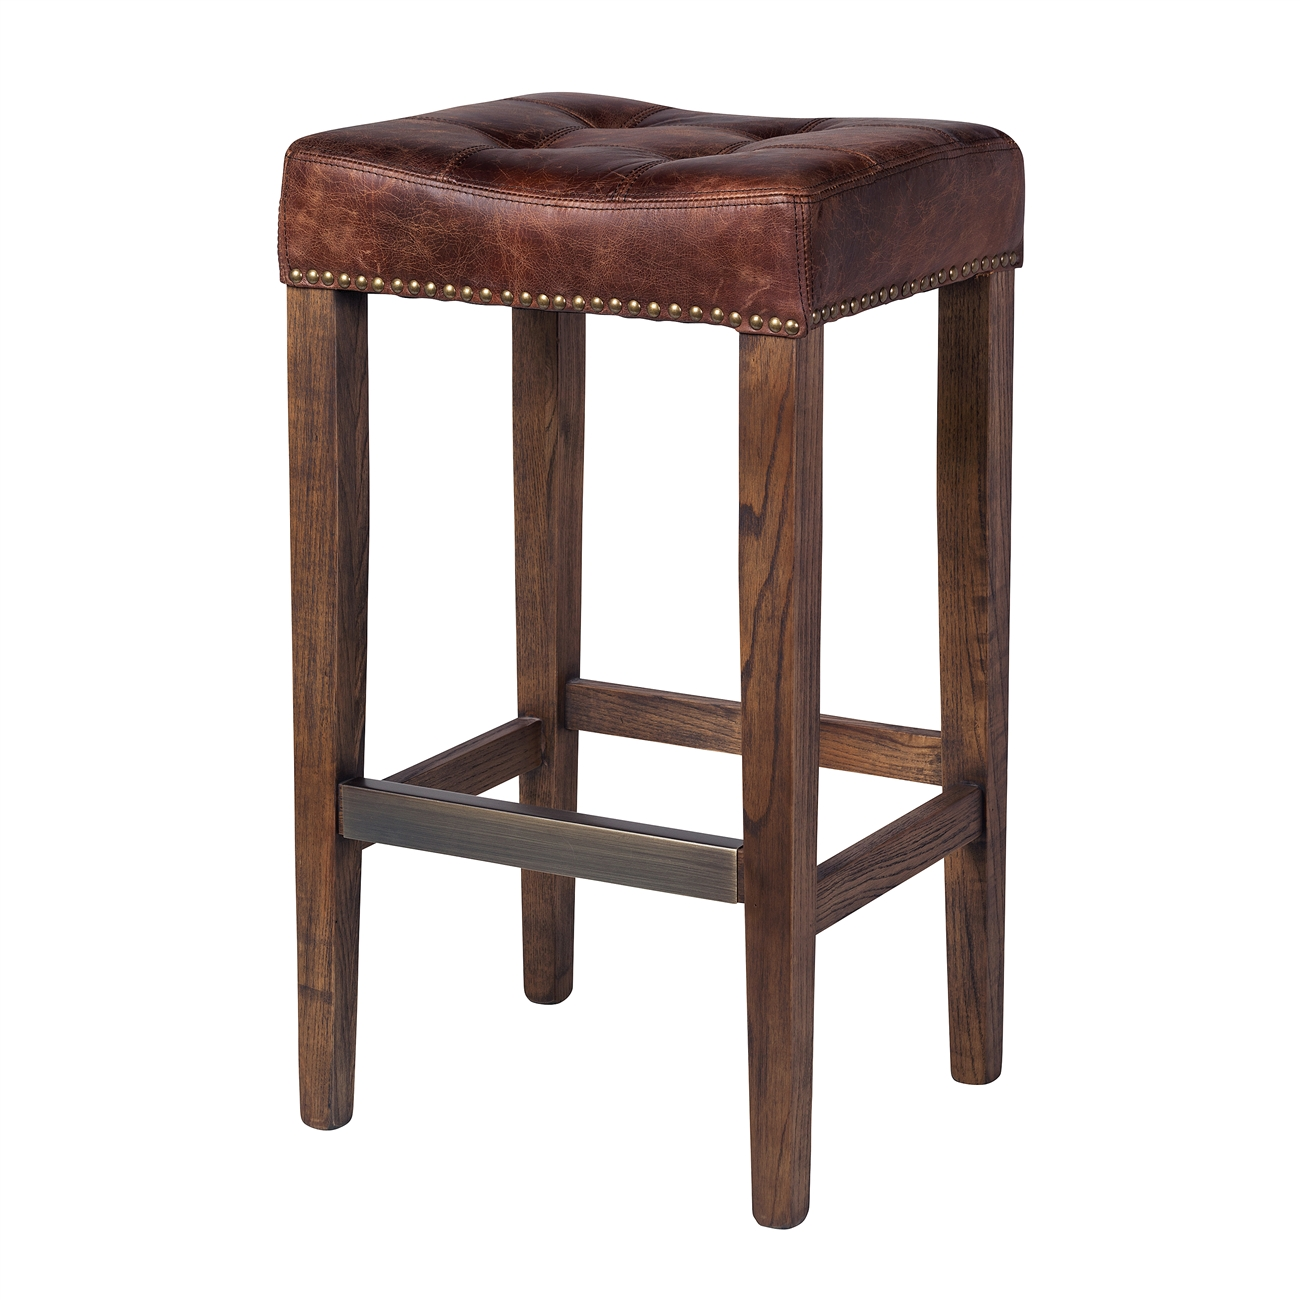 Ash Bar Stool in Vintage Brown Leather  sc 1 st  The Khazana & Ash Bar Stool in Vintage Brown Leather The Khazana Home Austin ... islam-shia.org